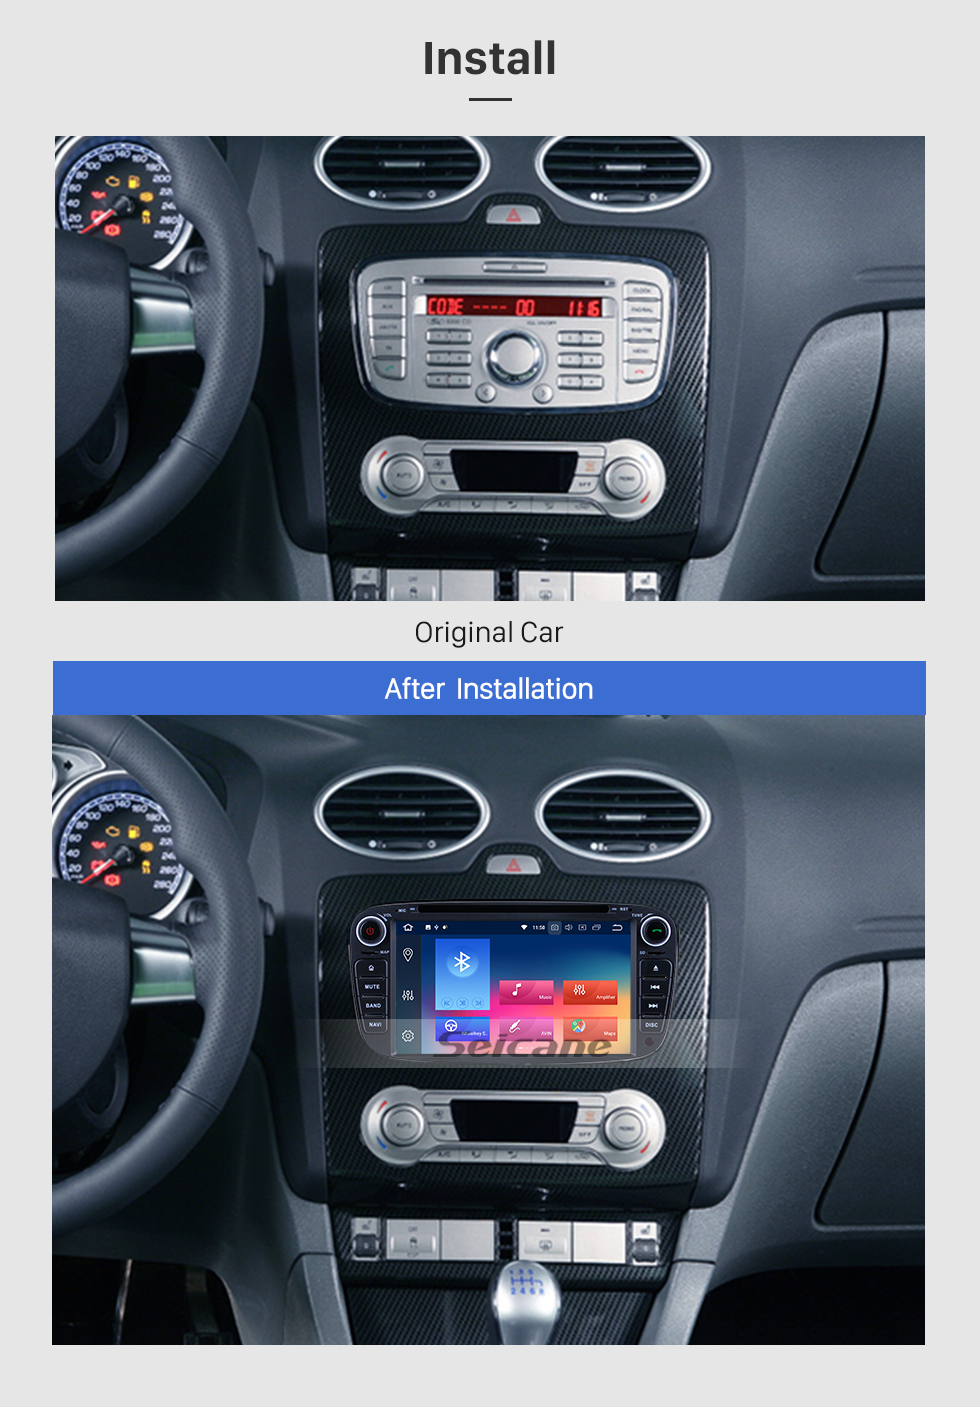 Seicane Android 9.0 2010 FORD TRANSIT CONNECT Radio GPS Car DVD Player with 3G WiFi Bluetooth Mirror Link OBD2 Backup Camera HD 1080P Video Steering Wheel Control MP3 AUX